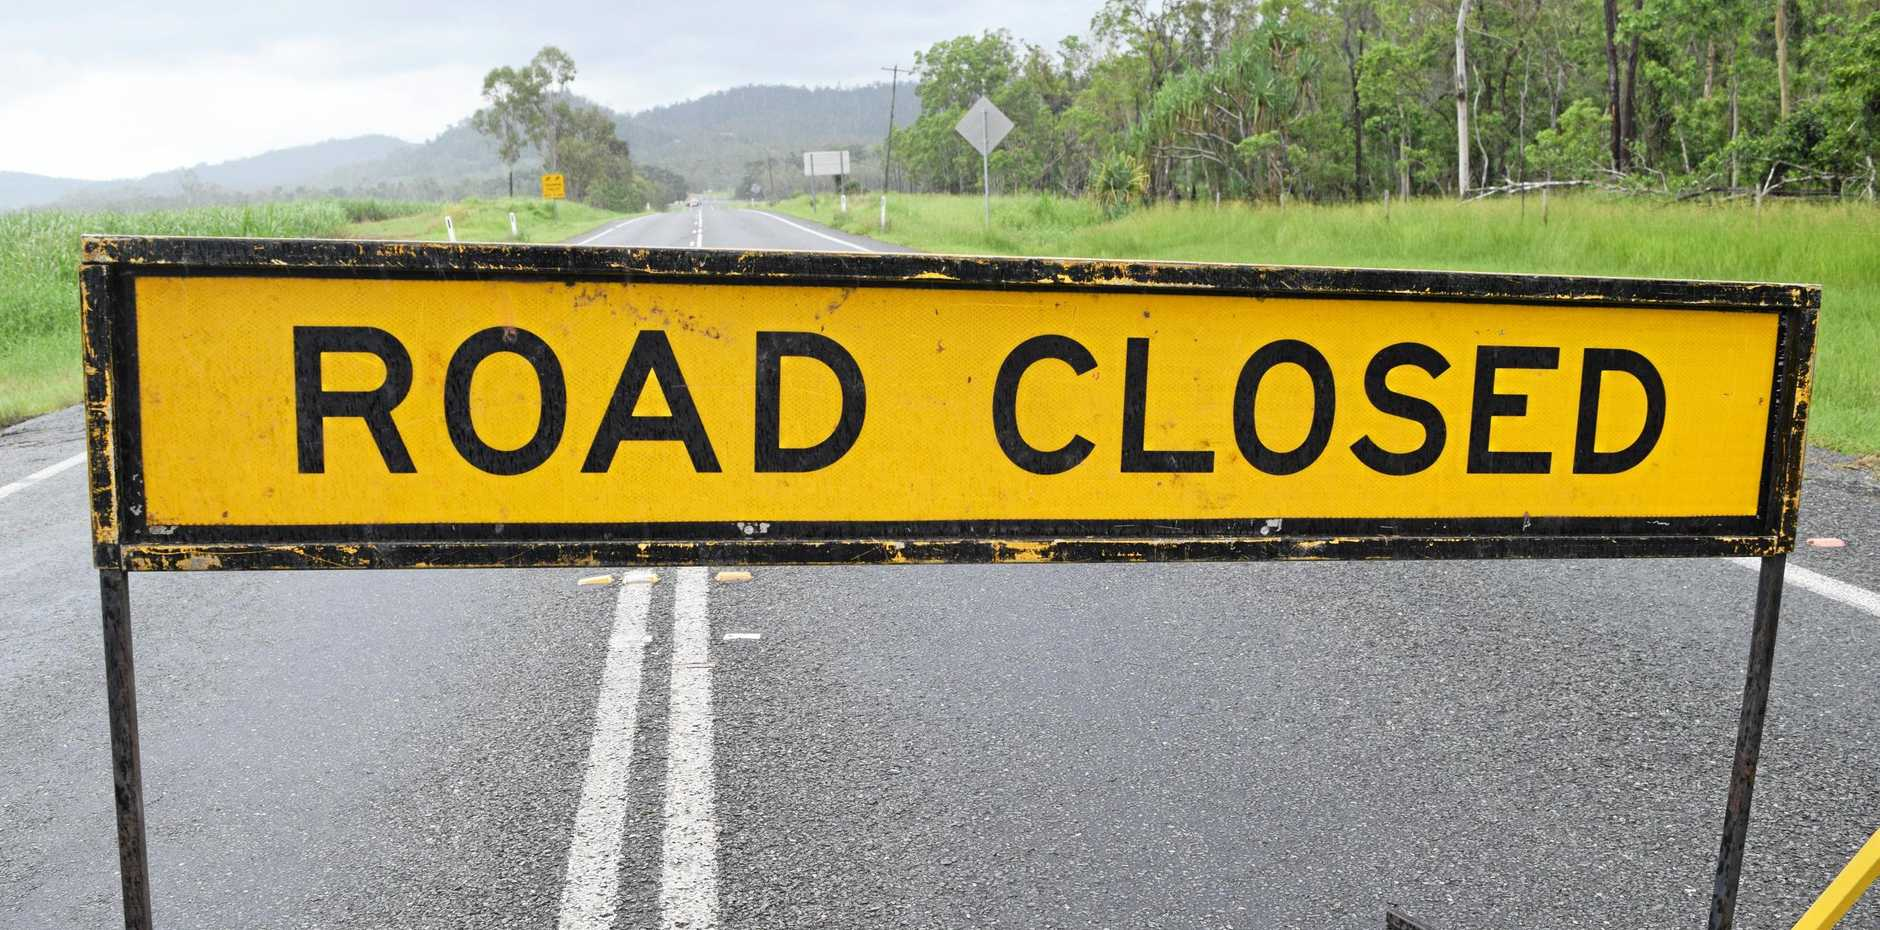 BRIDGE CLOSED: Council have made the decision to close a bridge in Ironpot.